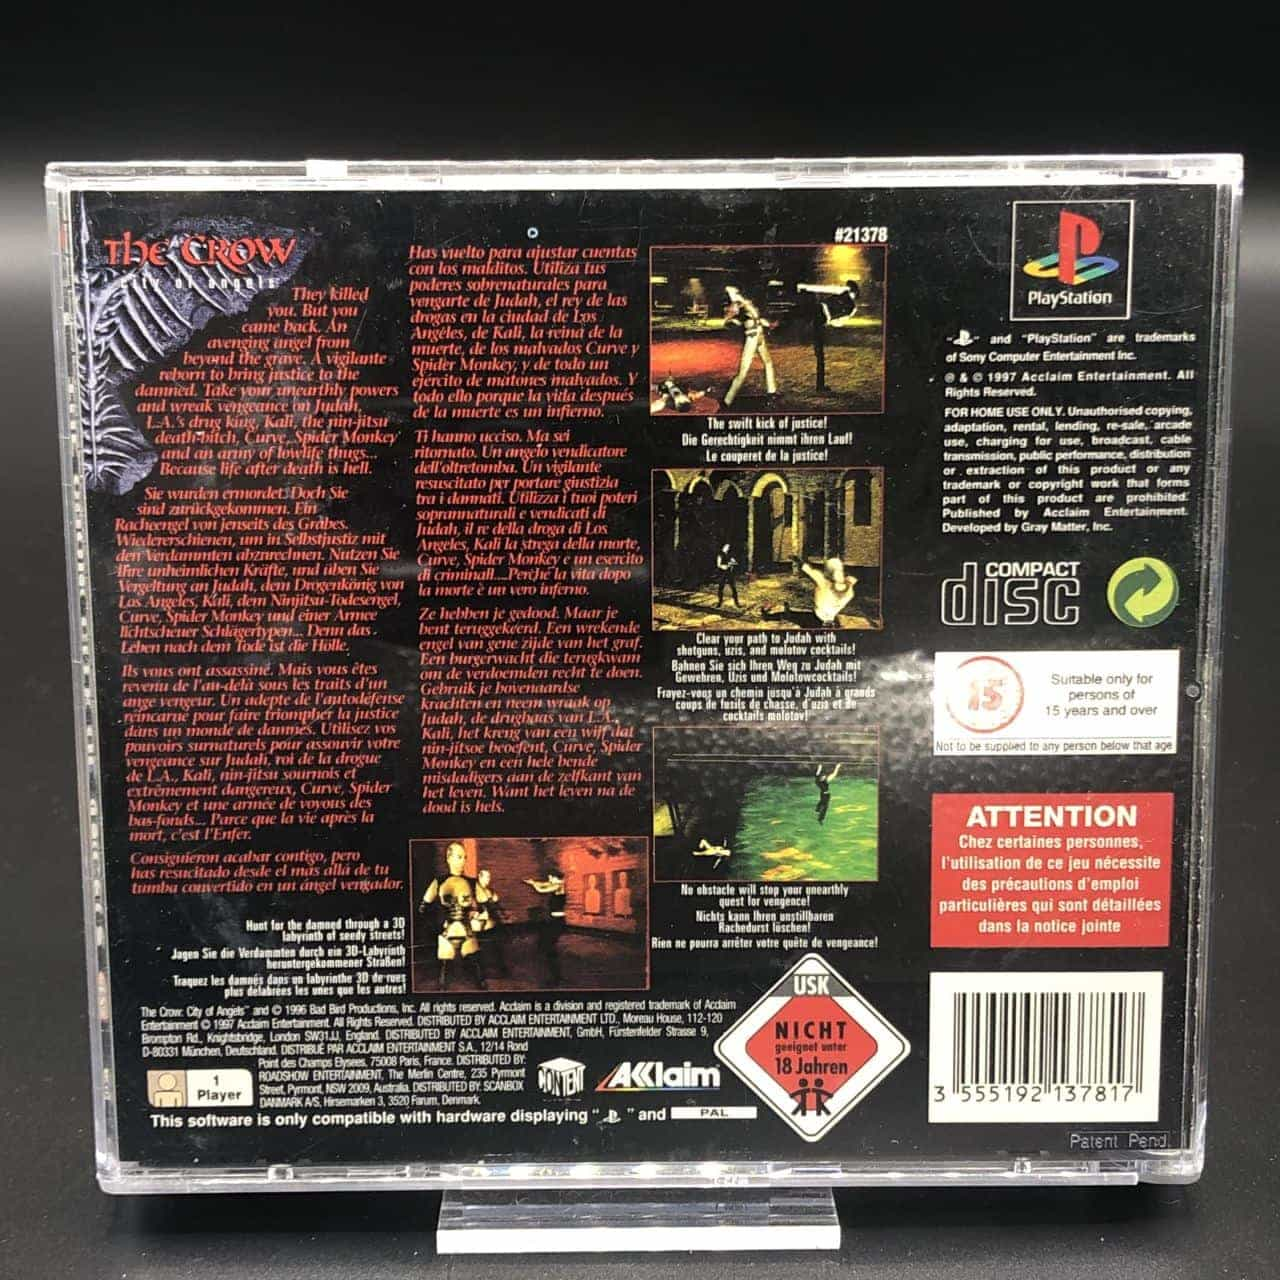 PS1 The Crow: City of Angels (Komplett) (Gut) Sony PlayStation 1 (FSK18)